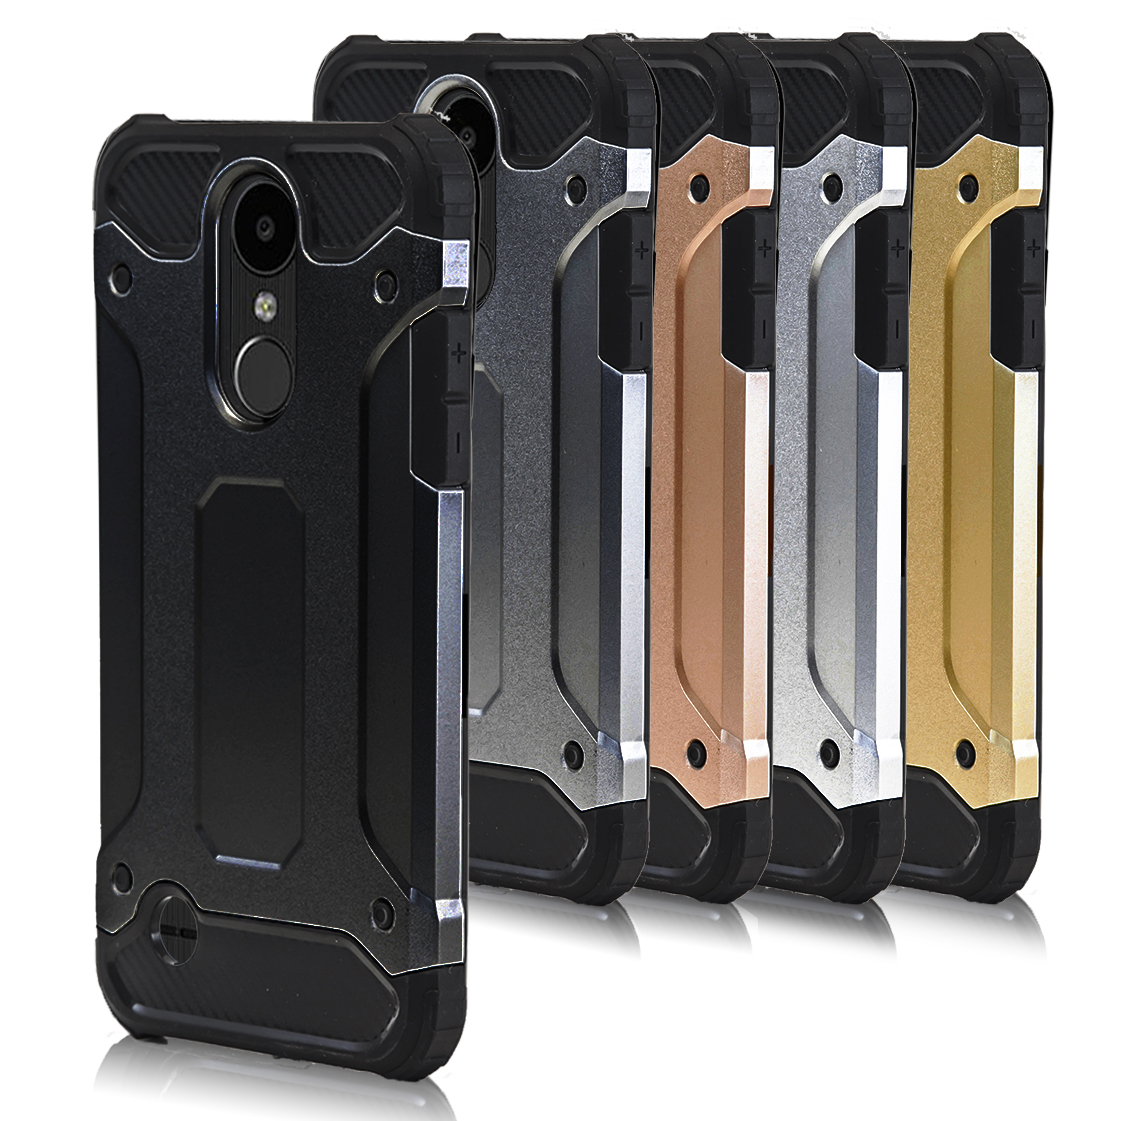 Hard-Case-For-iPhone-Samsung-Outdoor-Protection-Tough-Back-Cover-Plastic-TPU